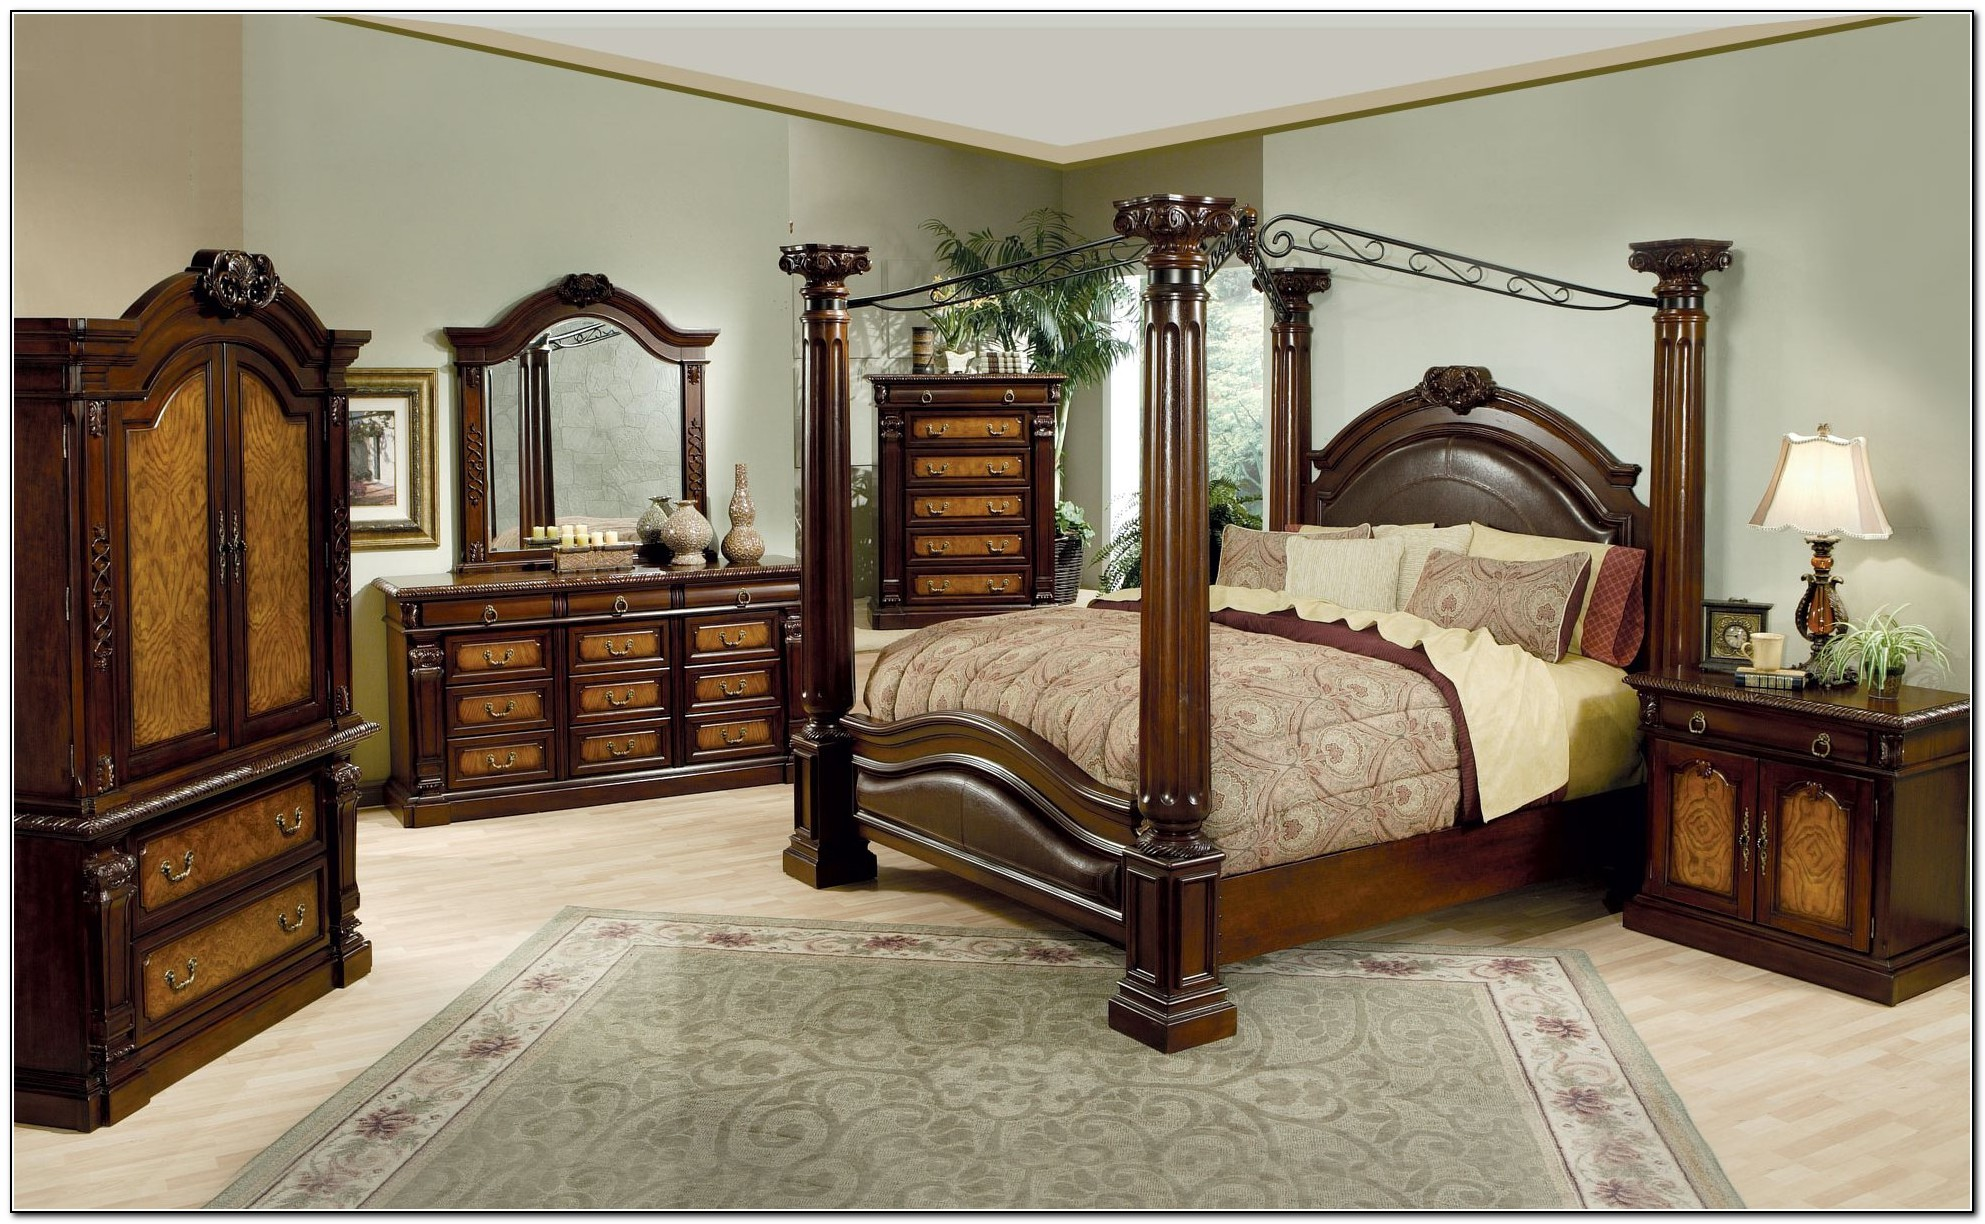 luxury king size canopy bed with dresstable and comforter sets also rug & Bedroom: Gorgeous Bedroom Fill With King Size Canopy Bed u2014 Agisee.org